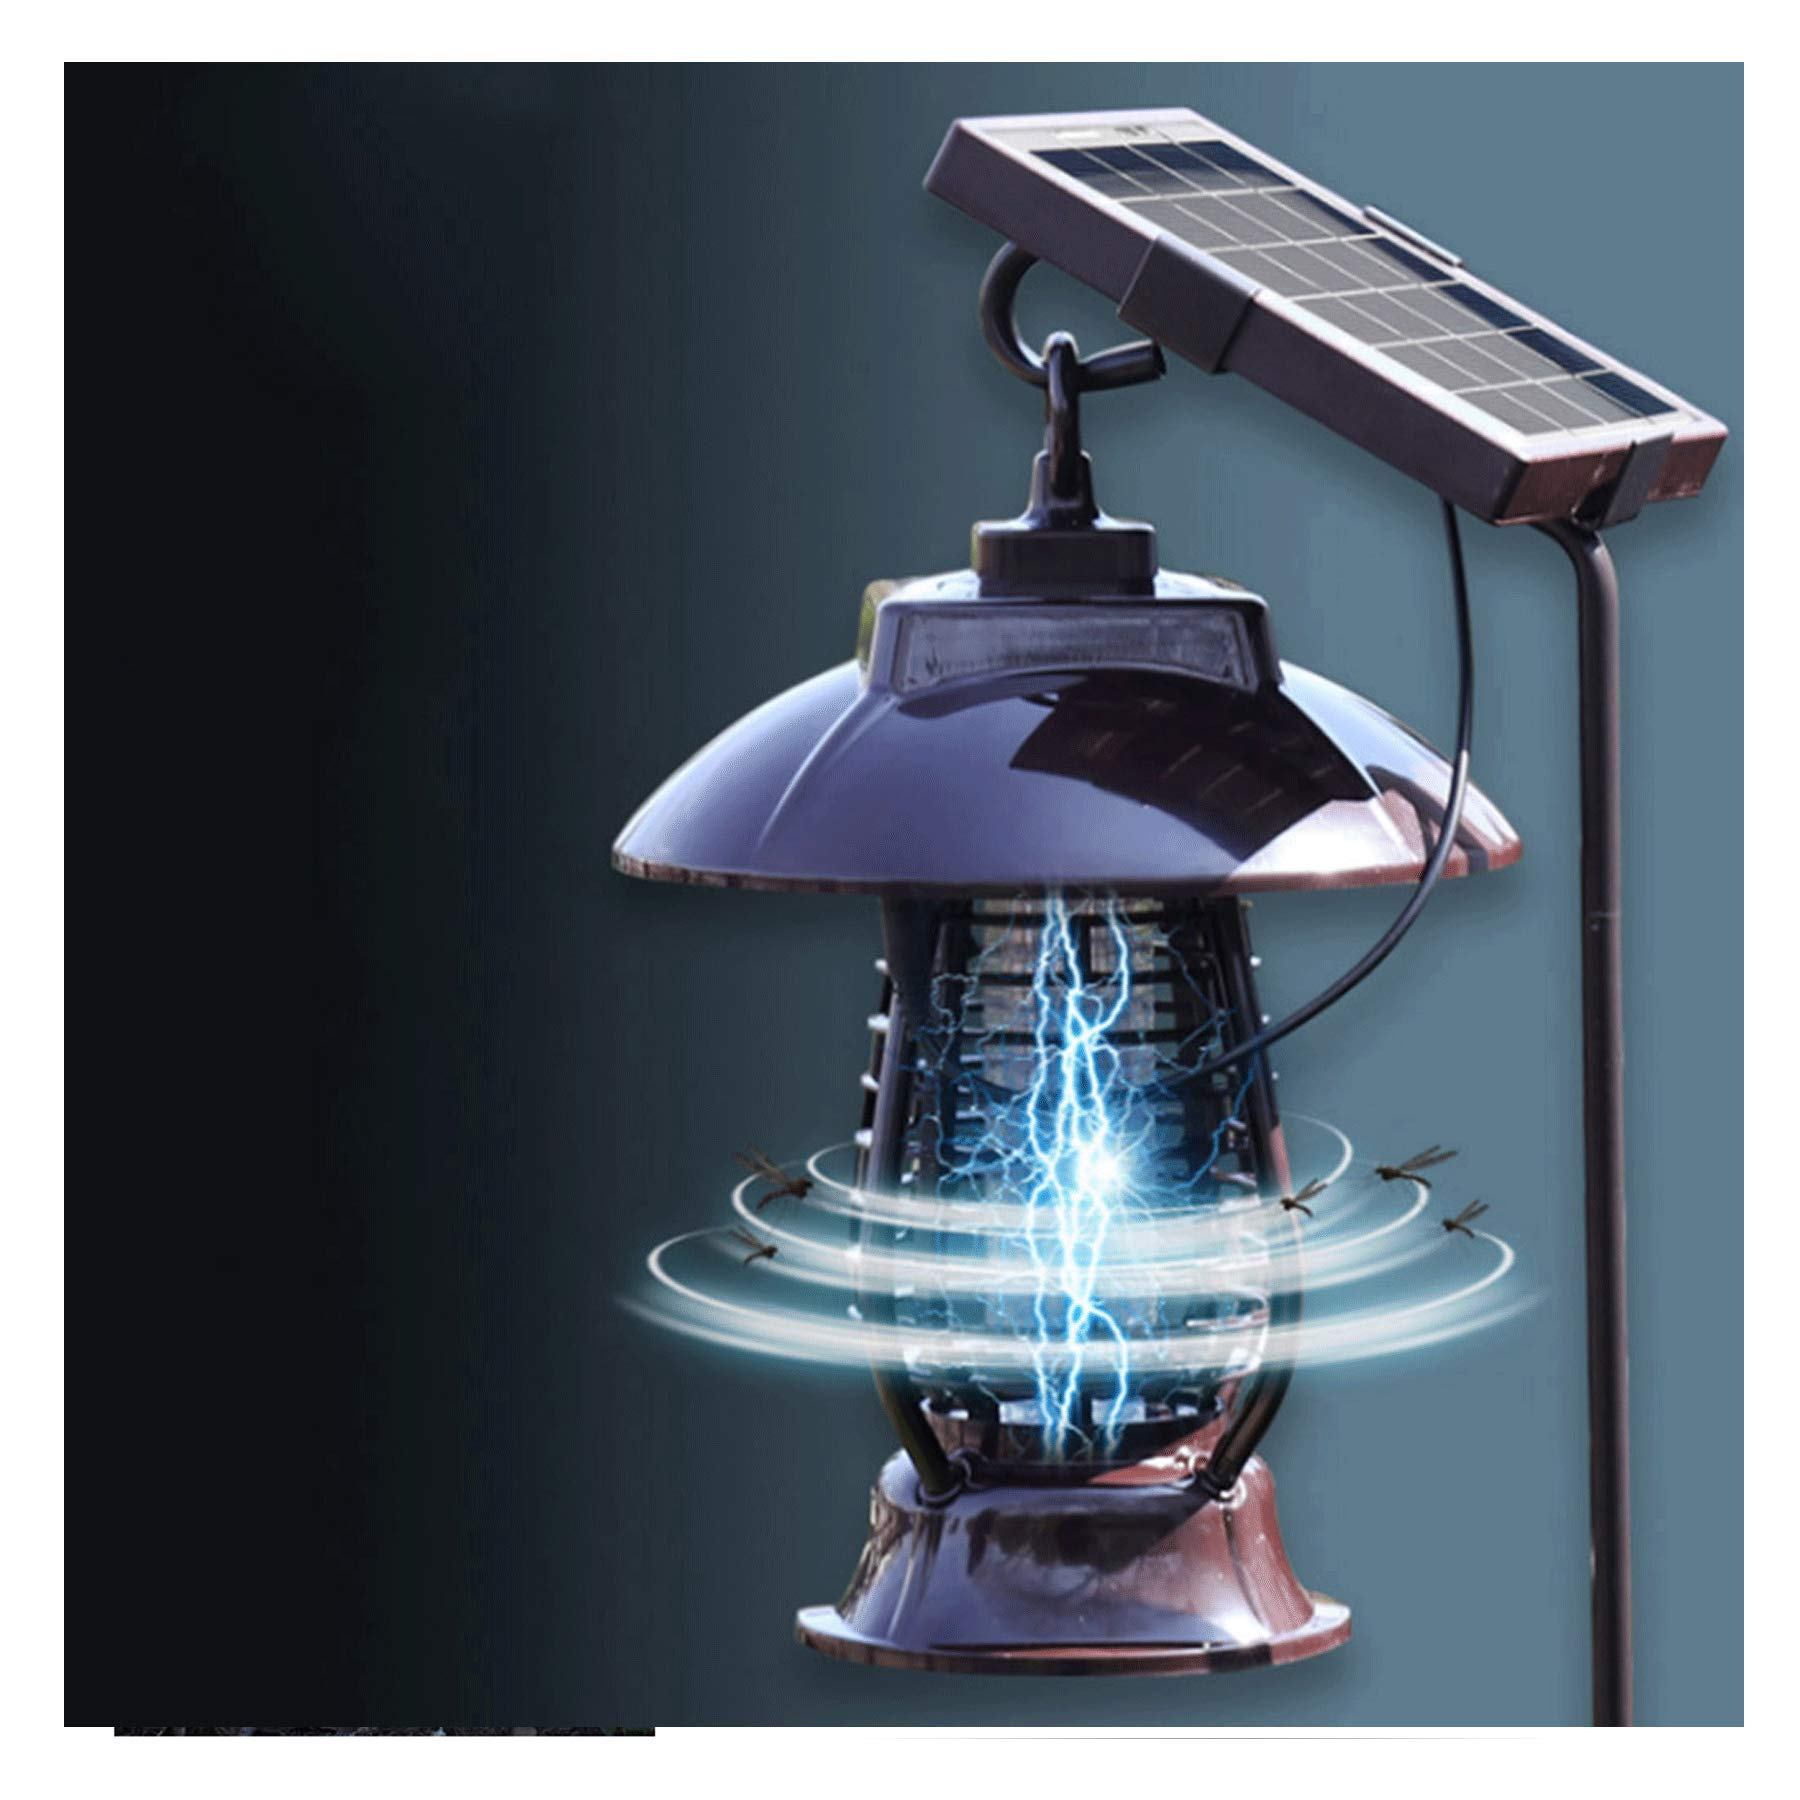 FILOL New Solar Powered Bug Zapper Mosquito Trap Killer Lamps Bug Zapper Pest Insect Outdoor Indoor Garden Lawn Waterproof Gold Lamp Eliminator in Lawn Residential Ground Garden Patio by FILOL household products